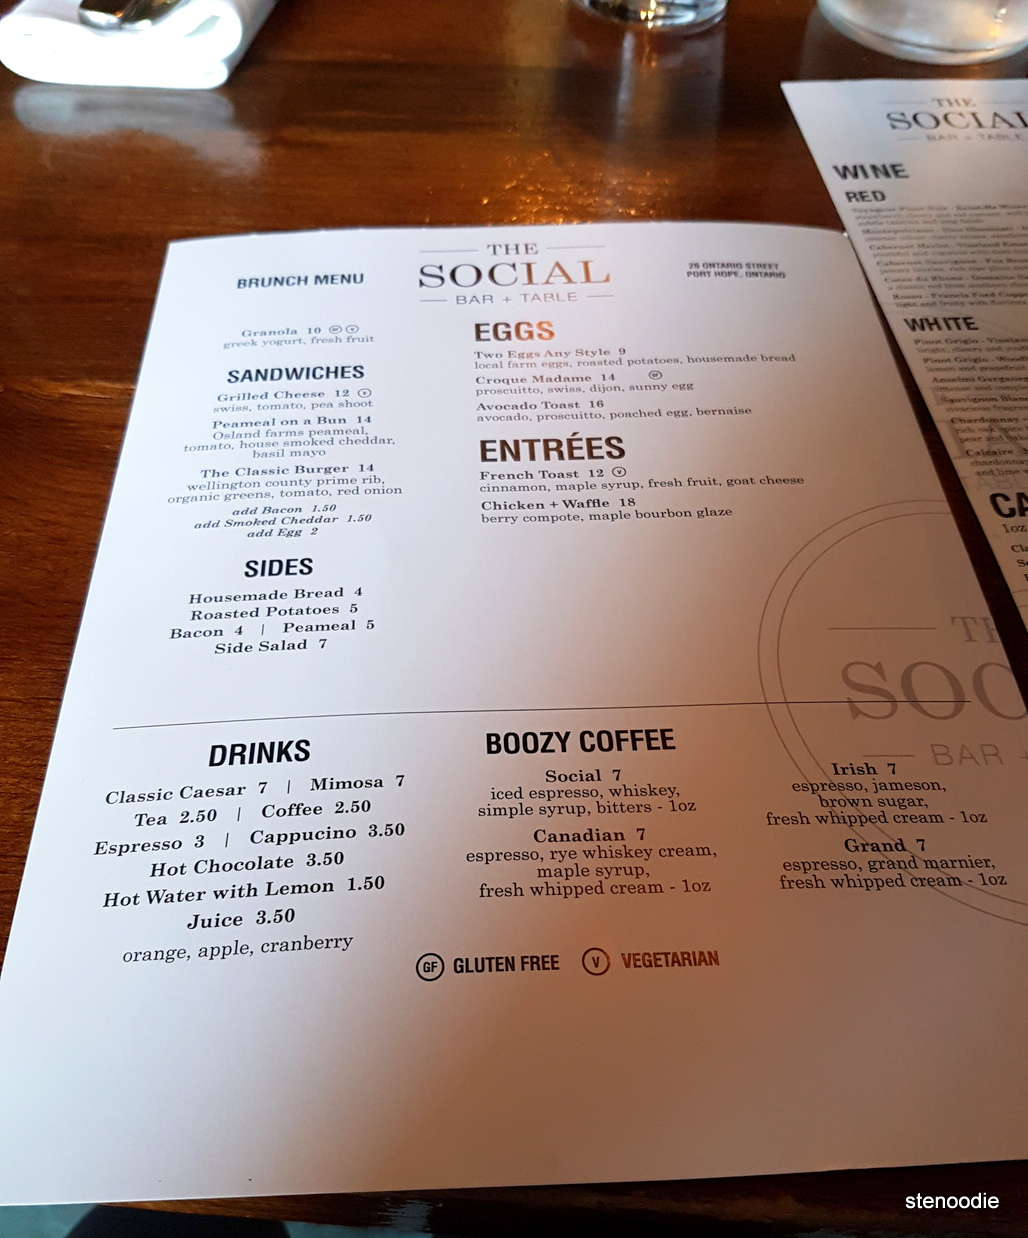 The Social Bar and Table Sunday brunch menu and prices